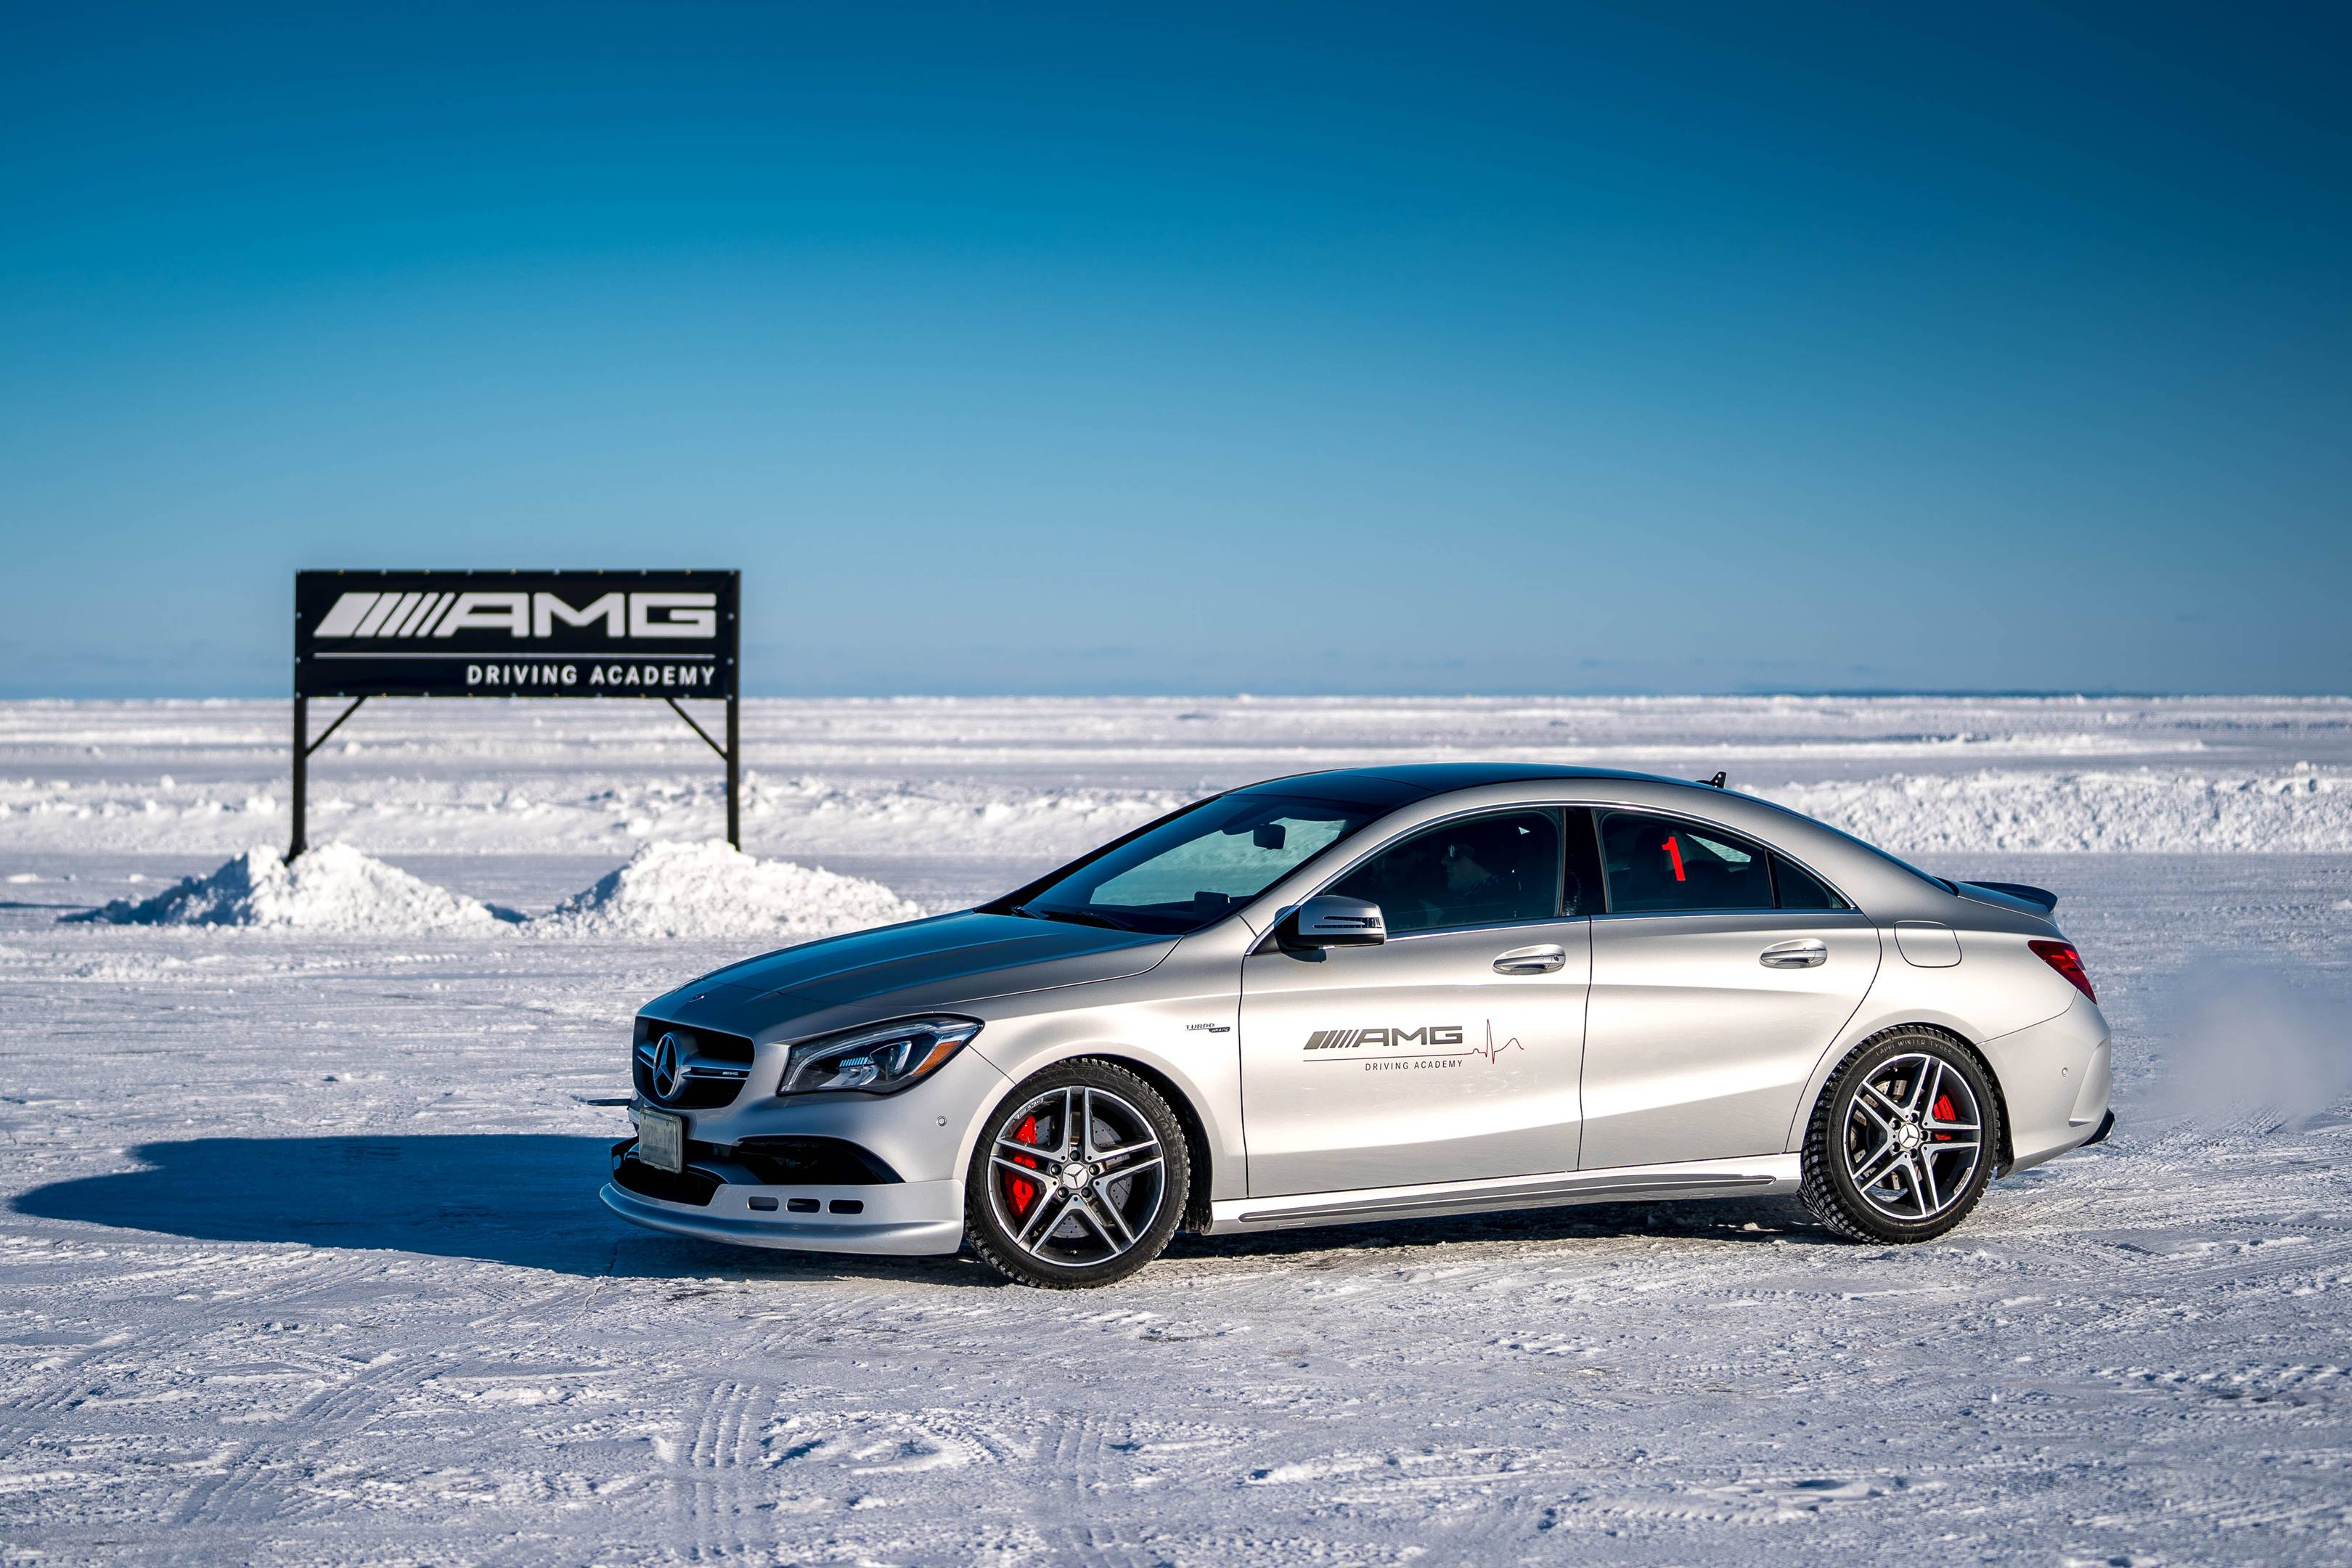 Mercedes-AMG driving academy